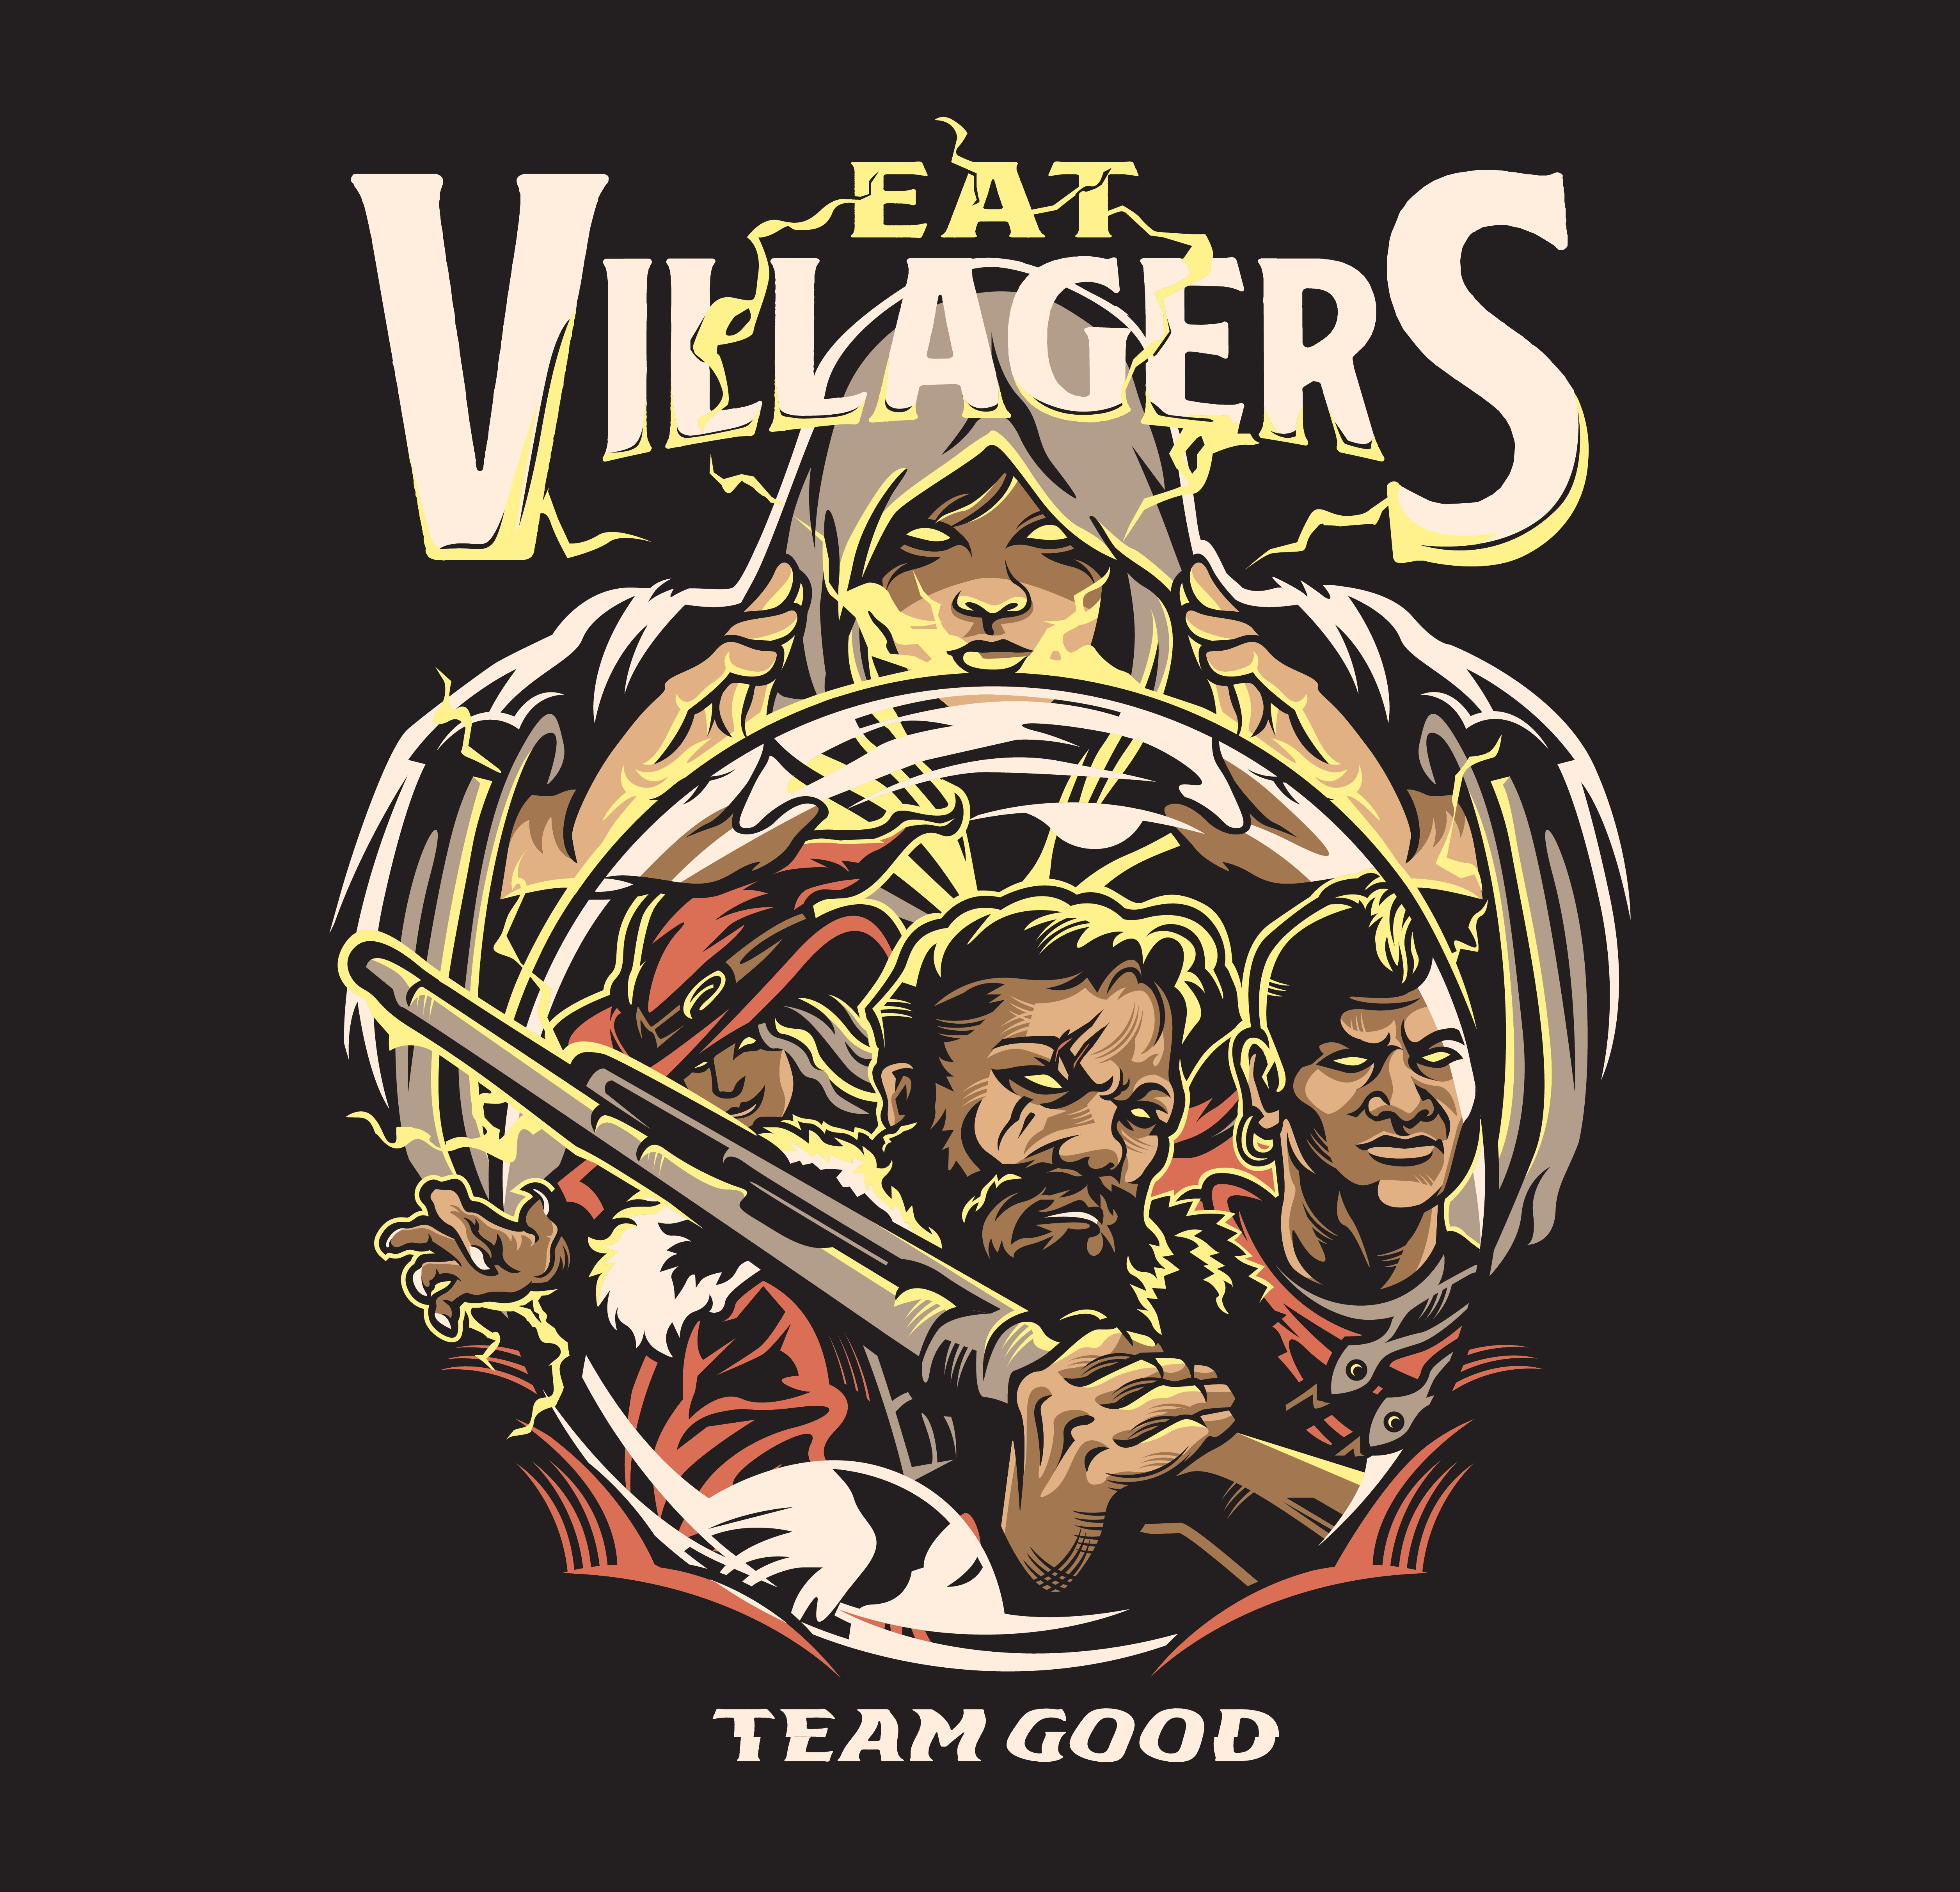 Create the 2019 shirt for EatVillagers, a company specializing in the game Werewolf. AWOOO!